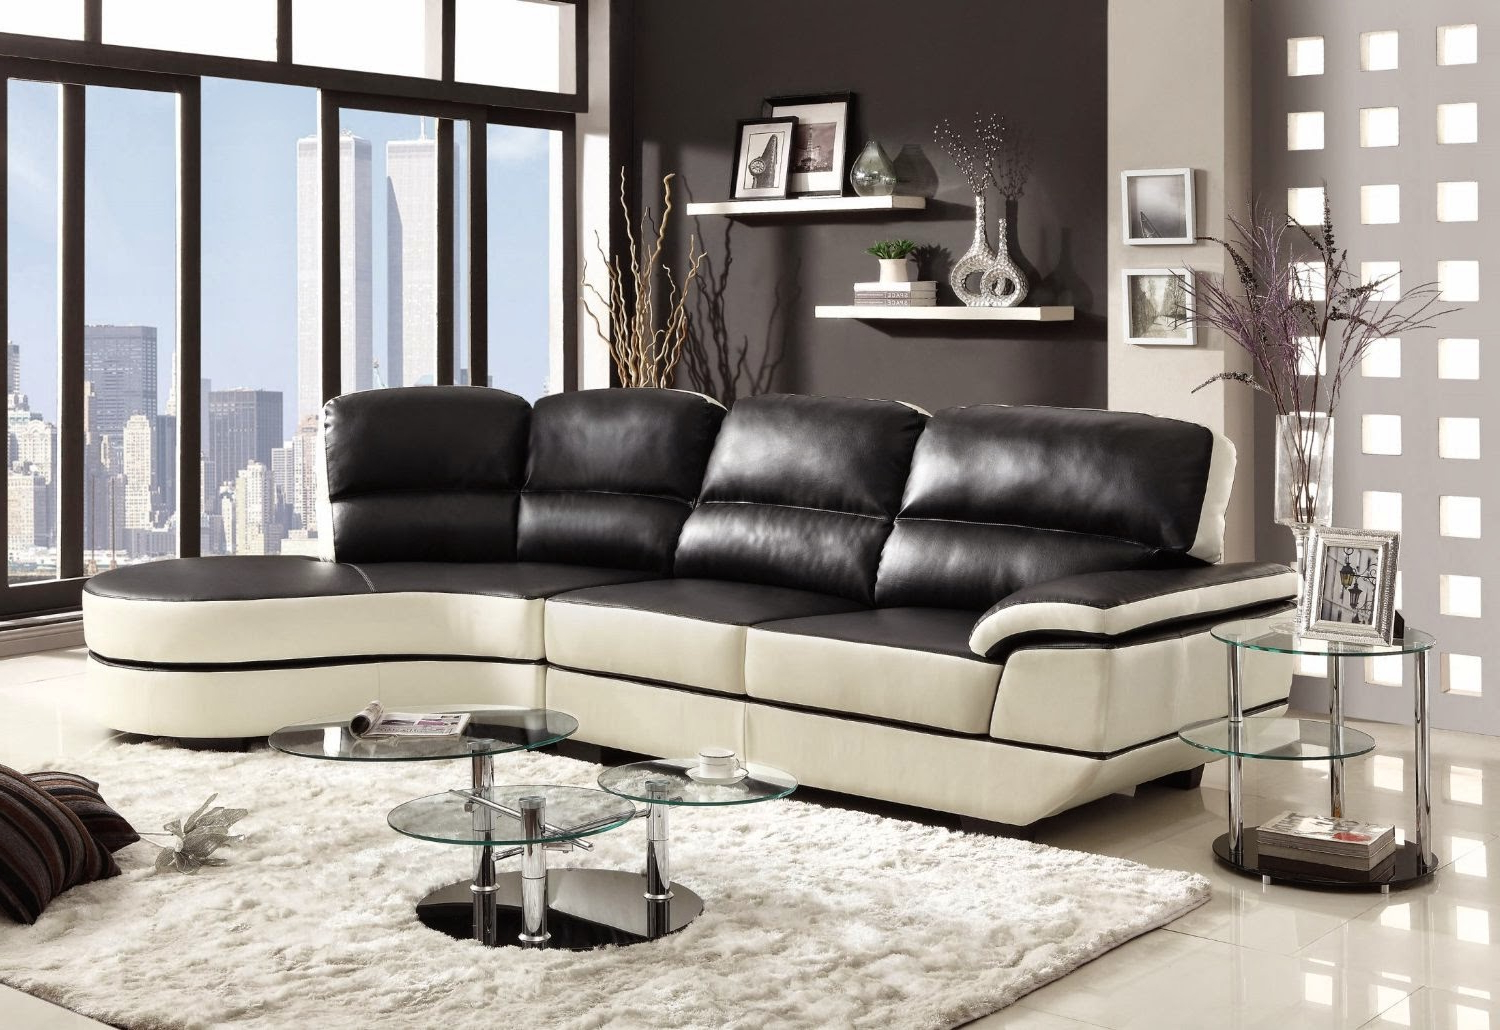 Preferred 4Pc Crowningshield Contemporary Chaise Sectional Sofas With Regard To Curved Sofa Website Reviews: Curved Sectional Sofa With Chaise (View 12 of 25)